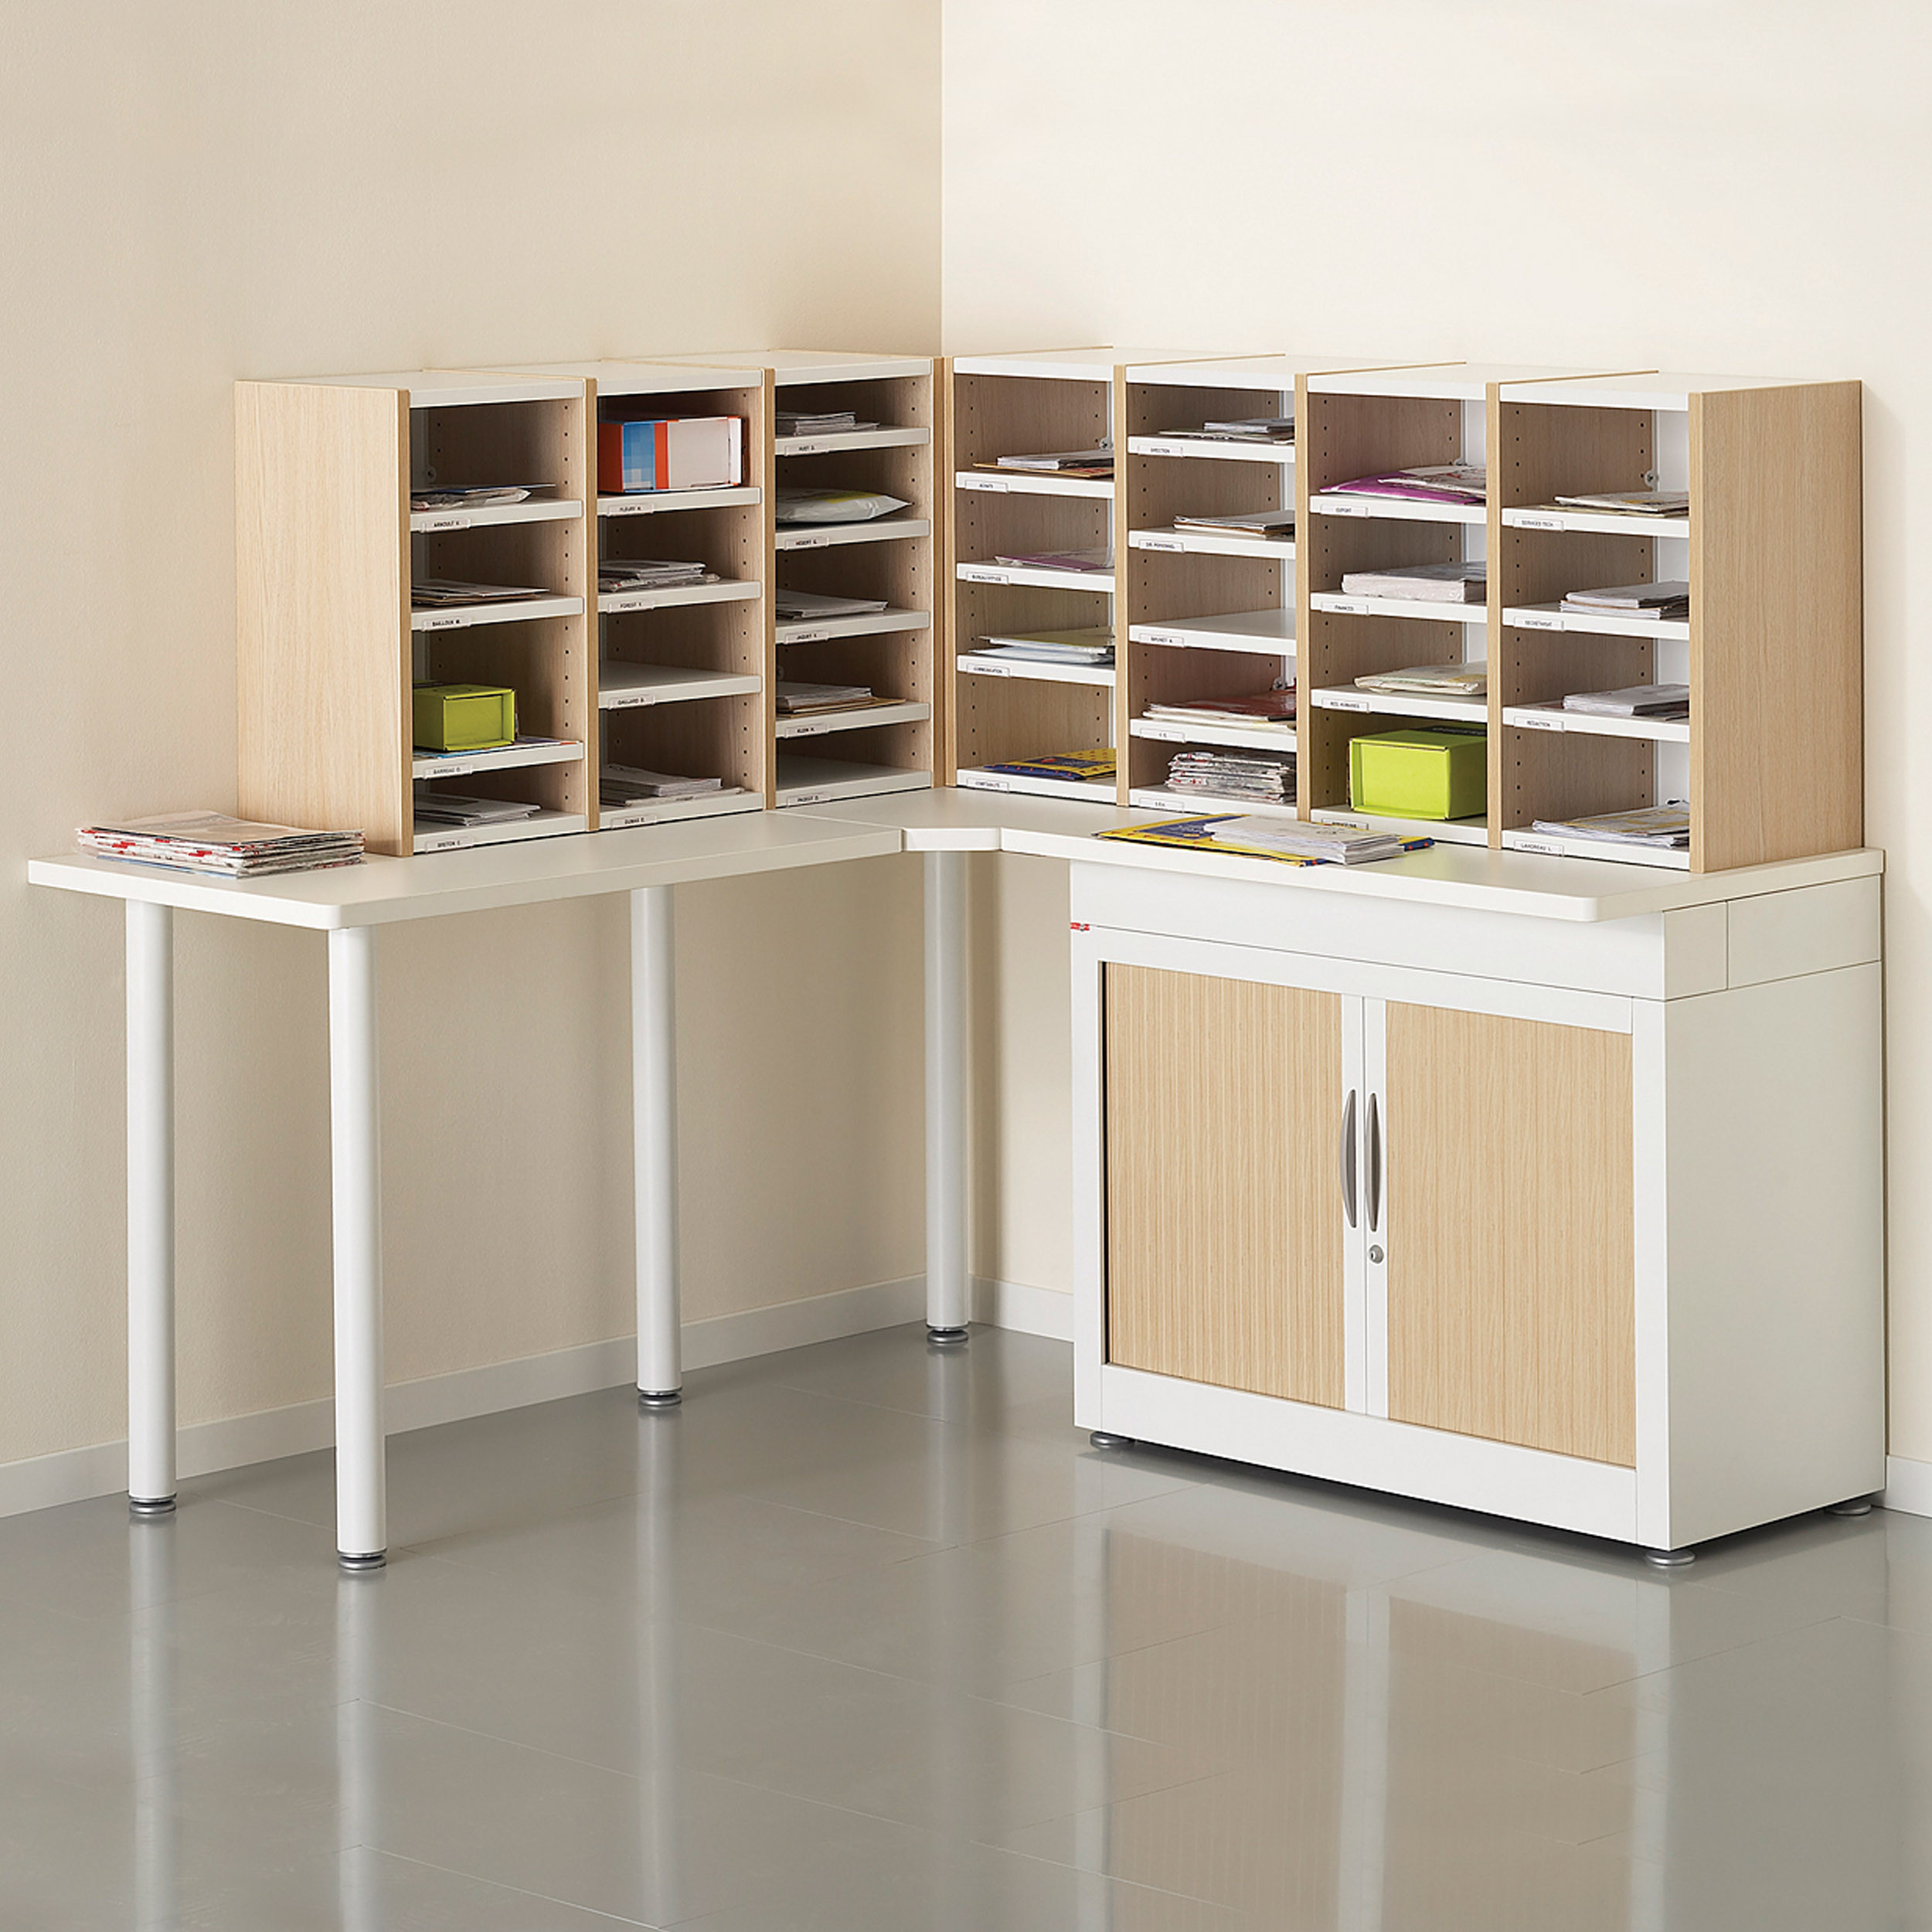 Trimod Post Room from Apres Furniture